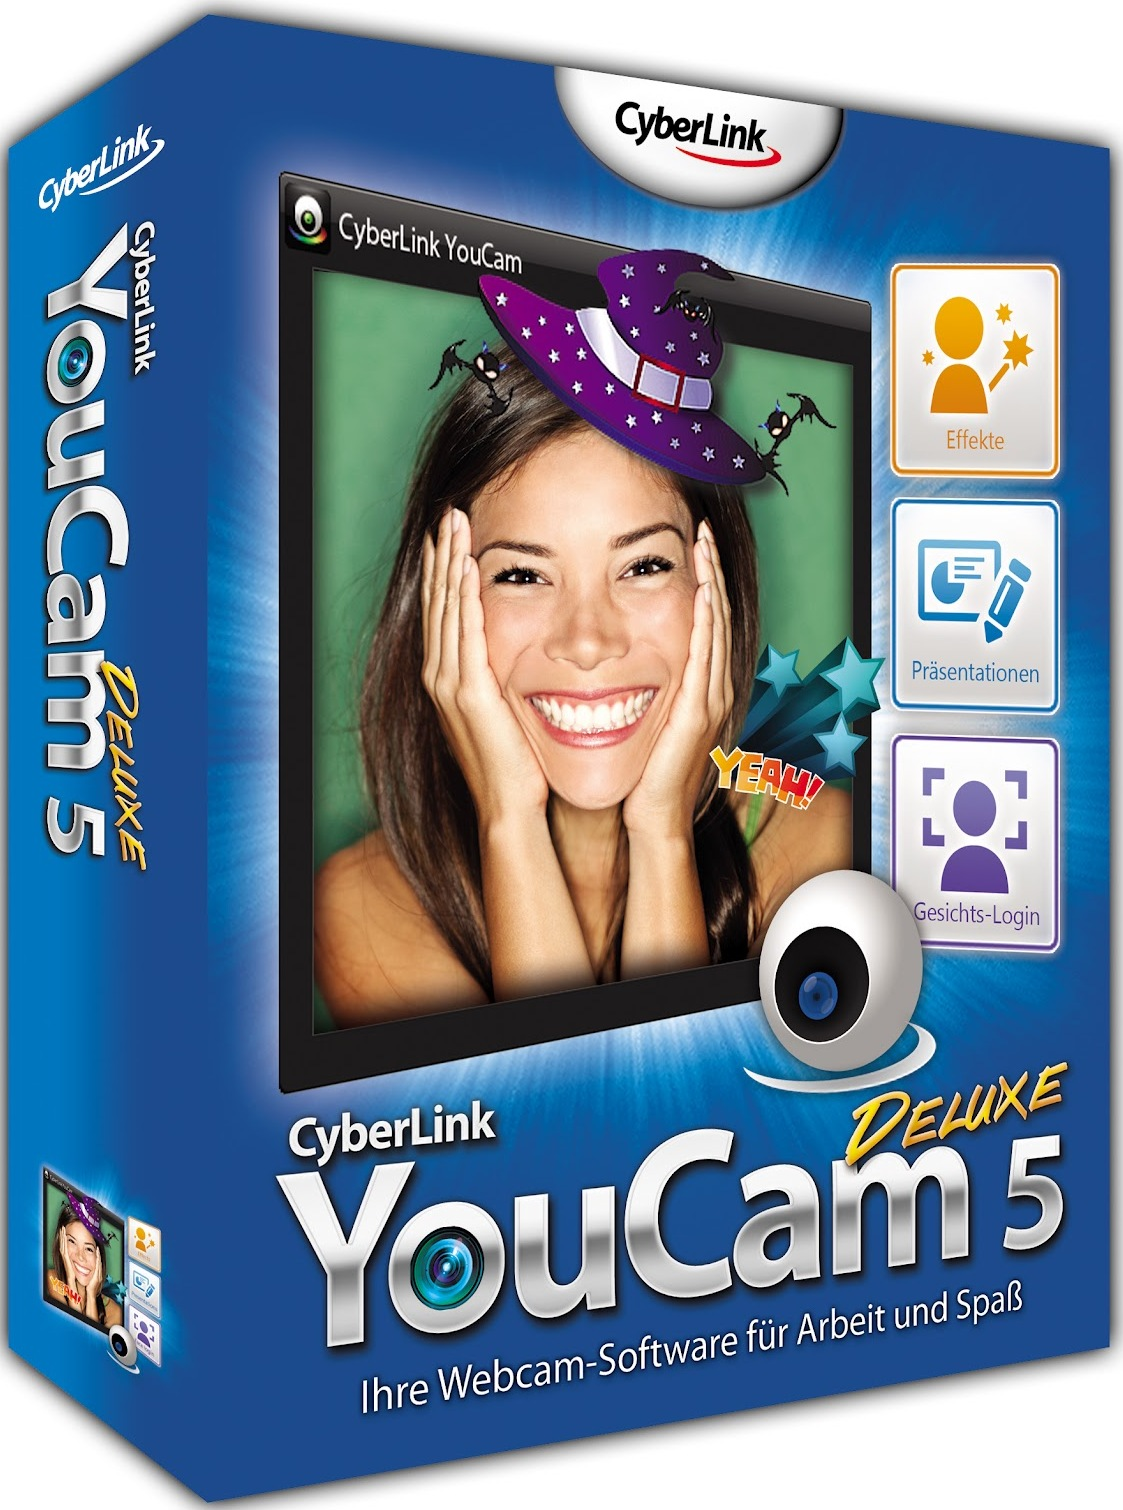 youcam free download for windows 10 64 bit